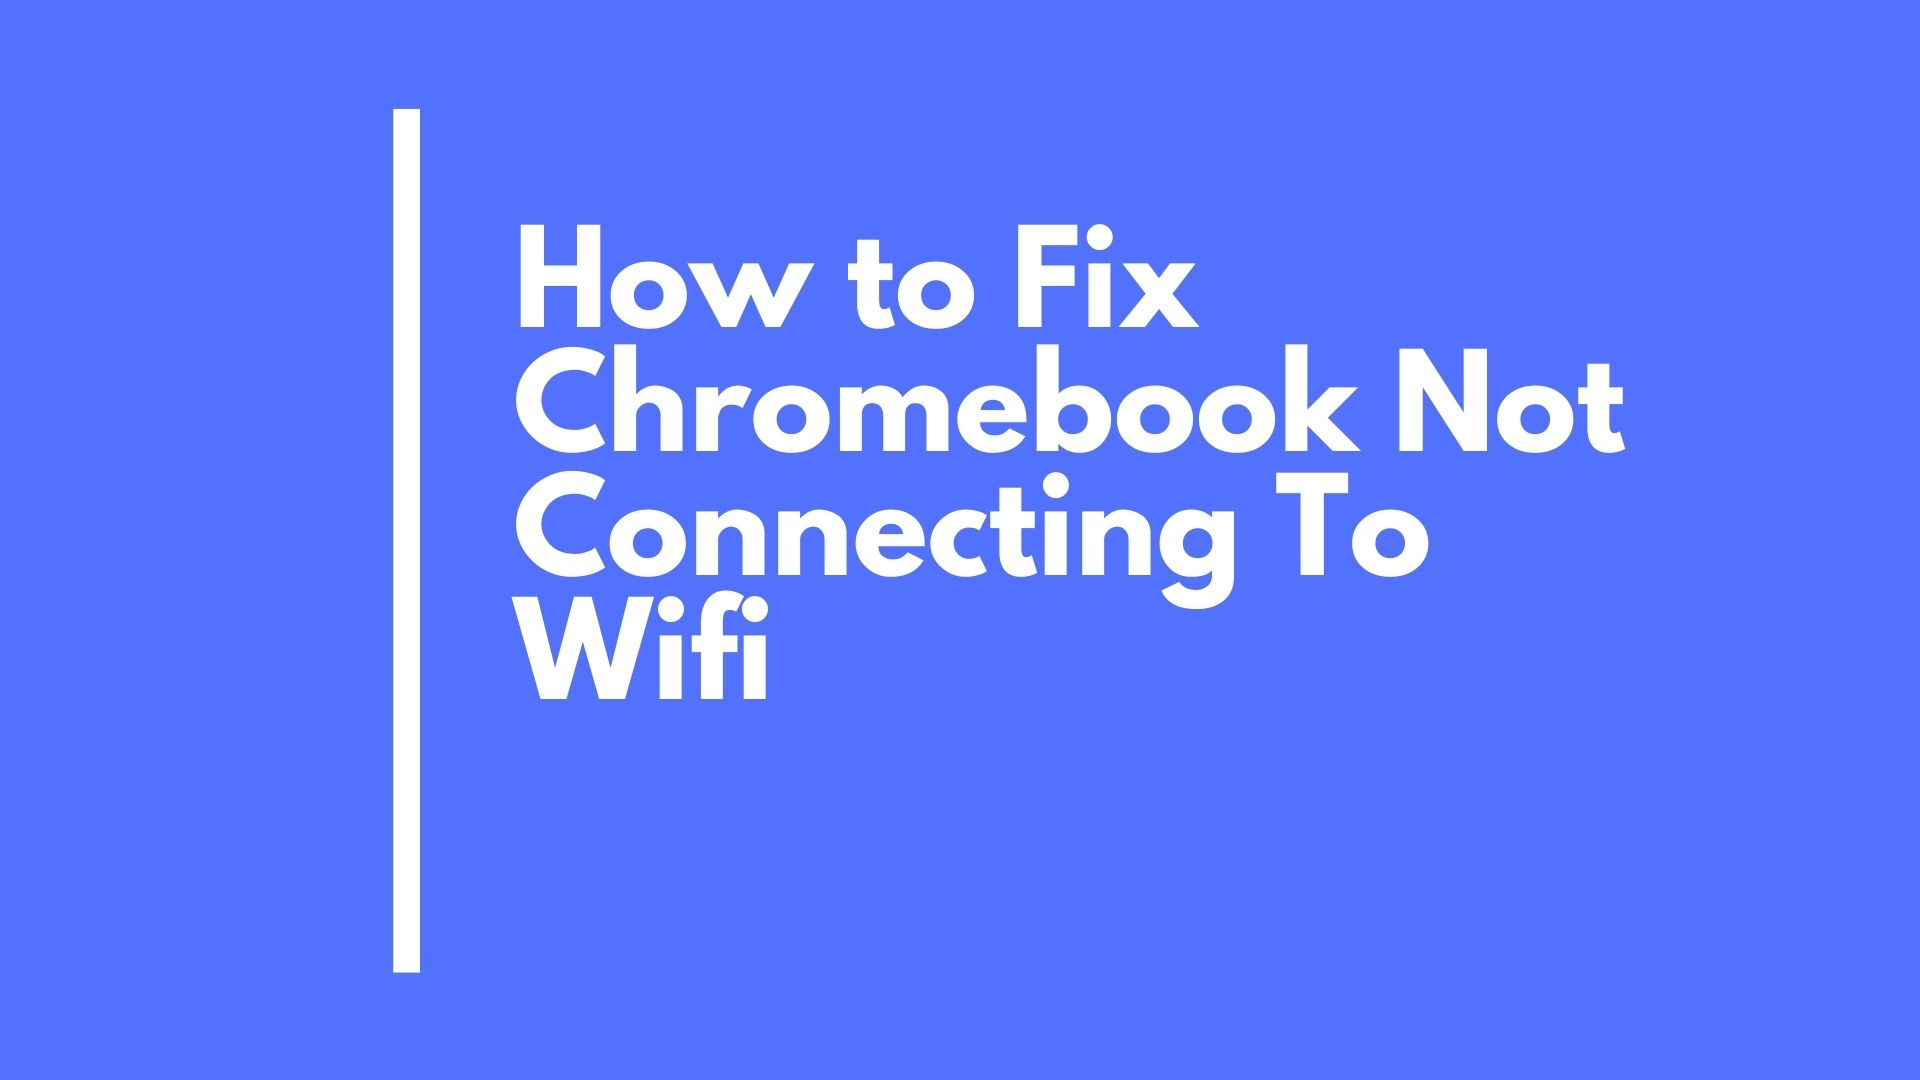 Chromebook Not Connecting To Wifi